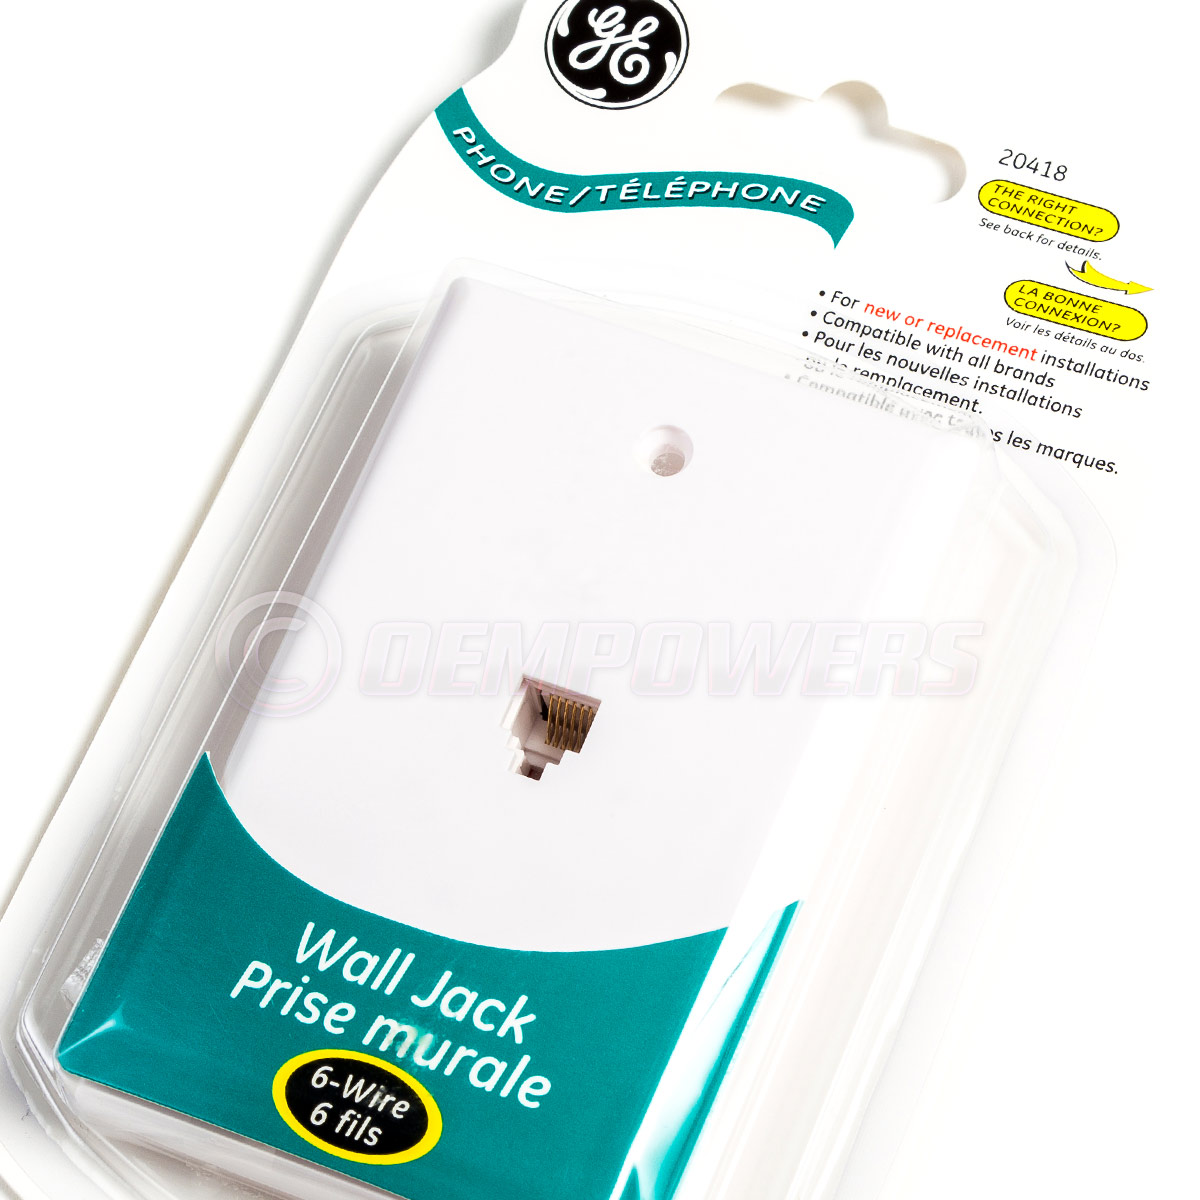 GE Phone Jack Wall Mount Plate Telephone Outlet 6-Wire Conductor ...